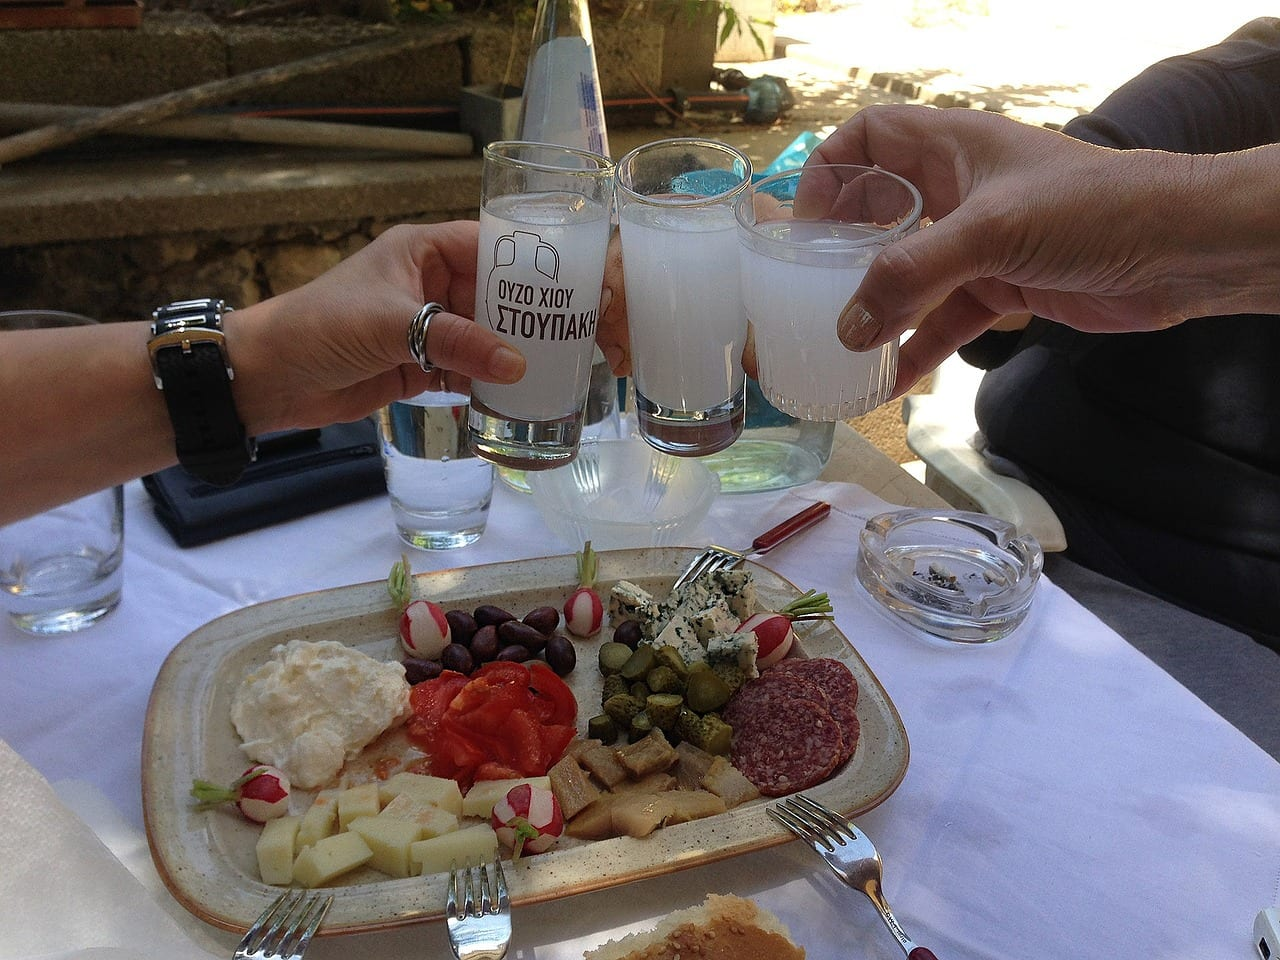 Drinking Ouzo in Greece